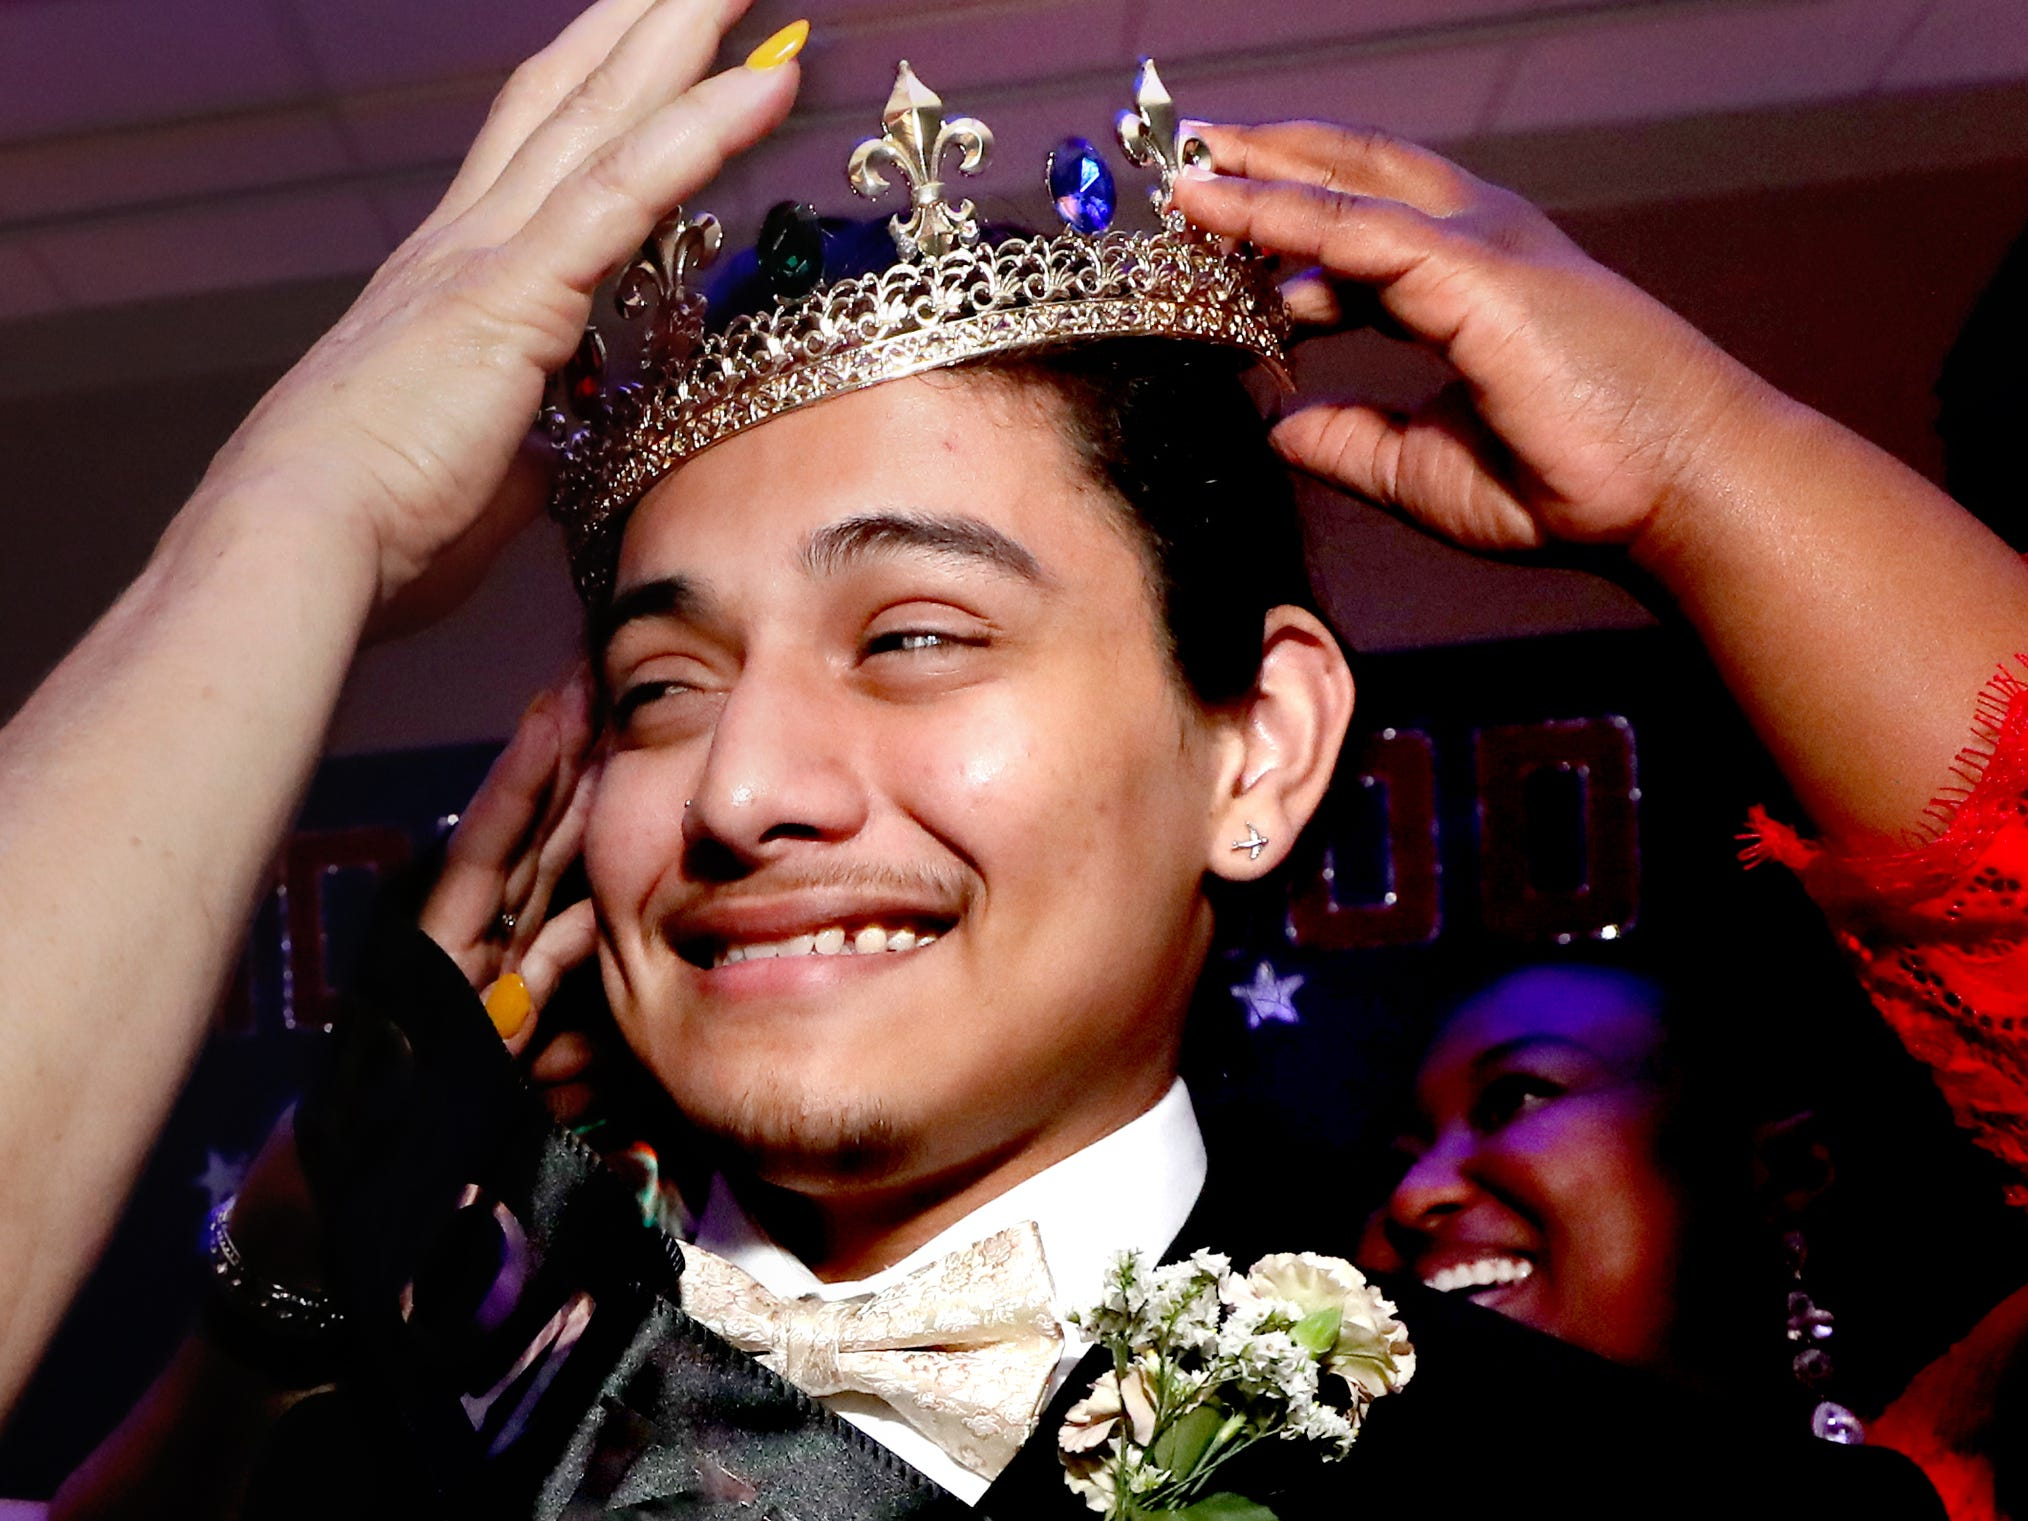 Diego Valencia is crowned Holloway High's Prom King at Holloway's prom at the DoubleTree on Thursday April 18, 2019.